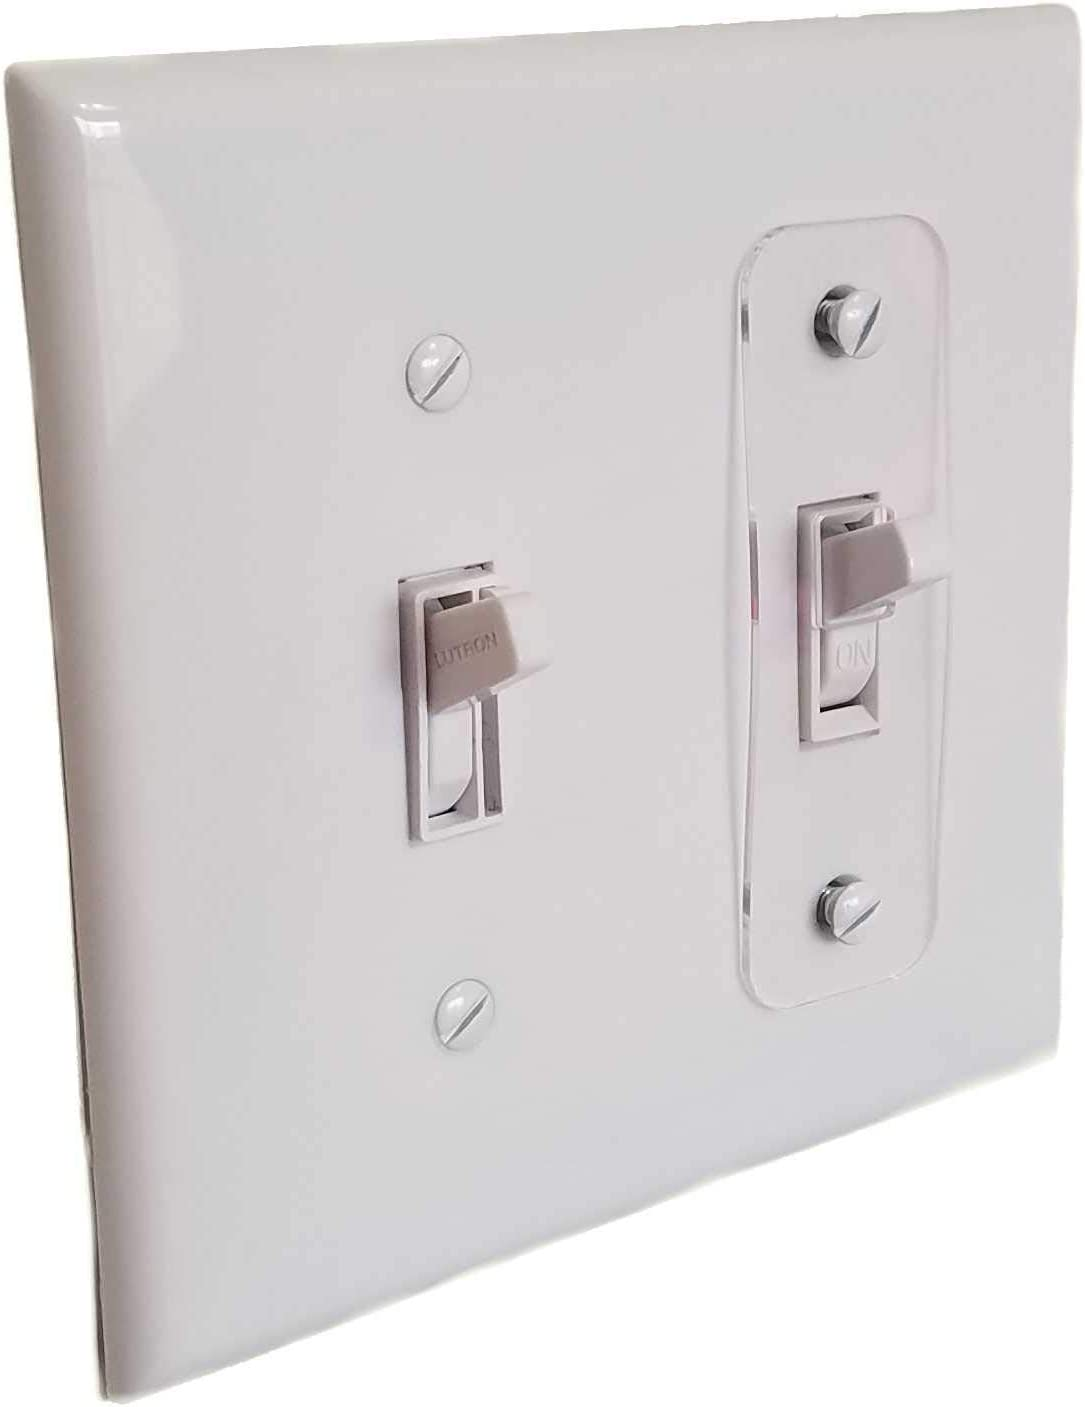 5pc Toggle Switch Light Switch Locks, Child-Safe, Residential, Lighting, Ect.